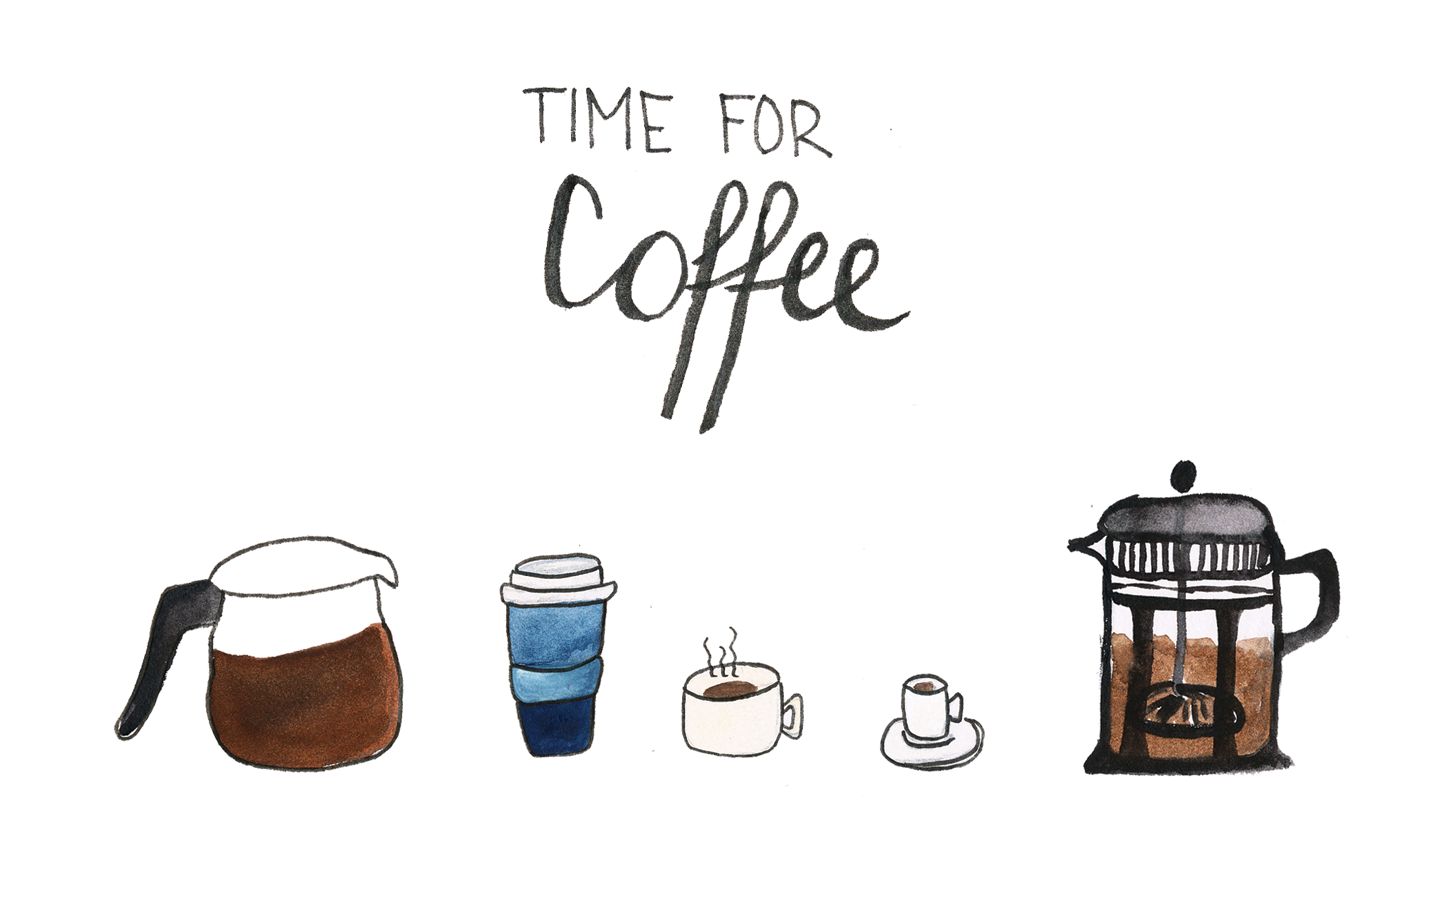 Wallpaper_Time-for-coffee_1440